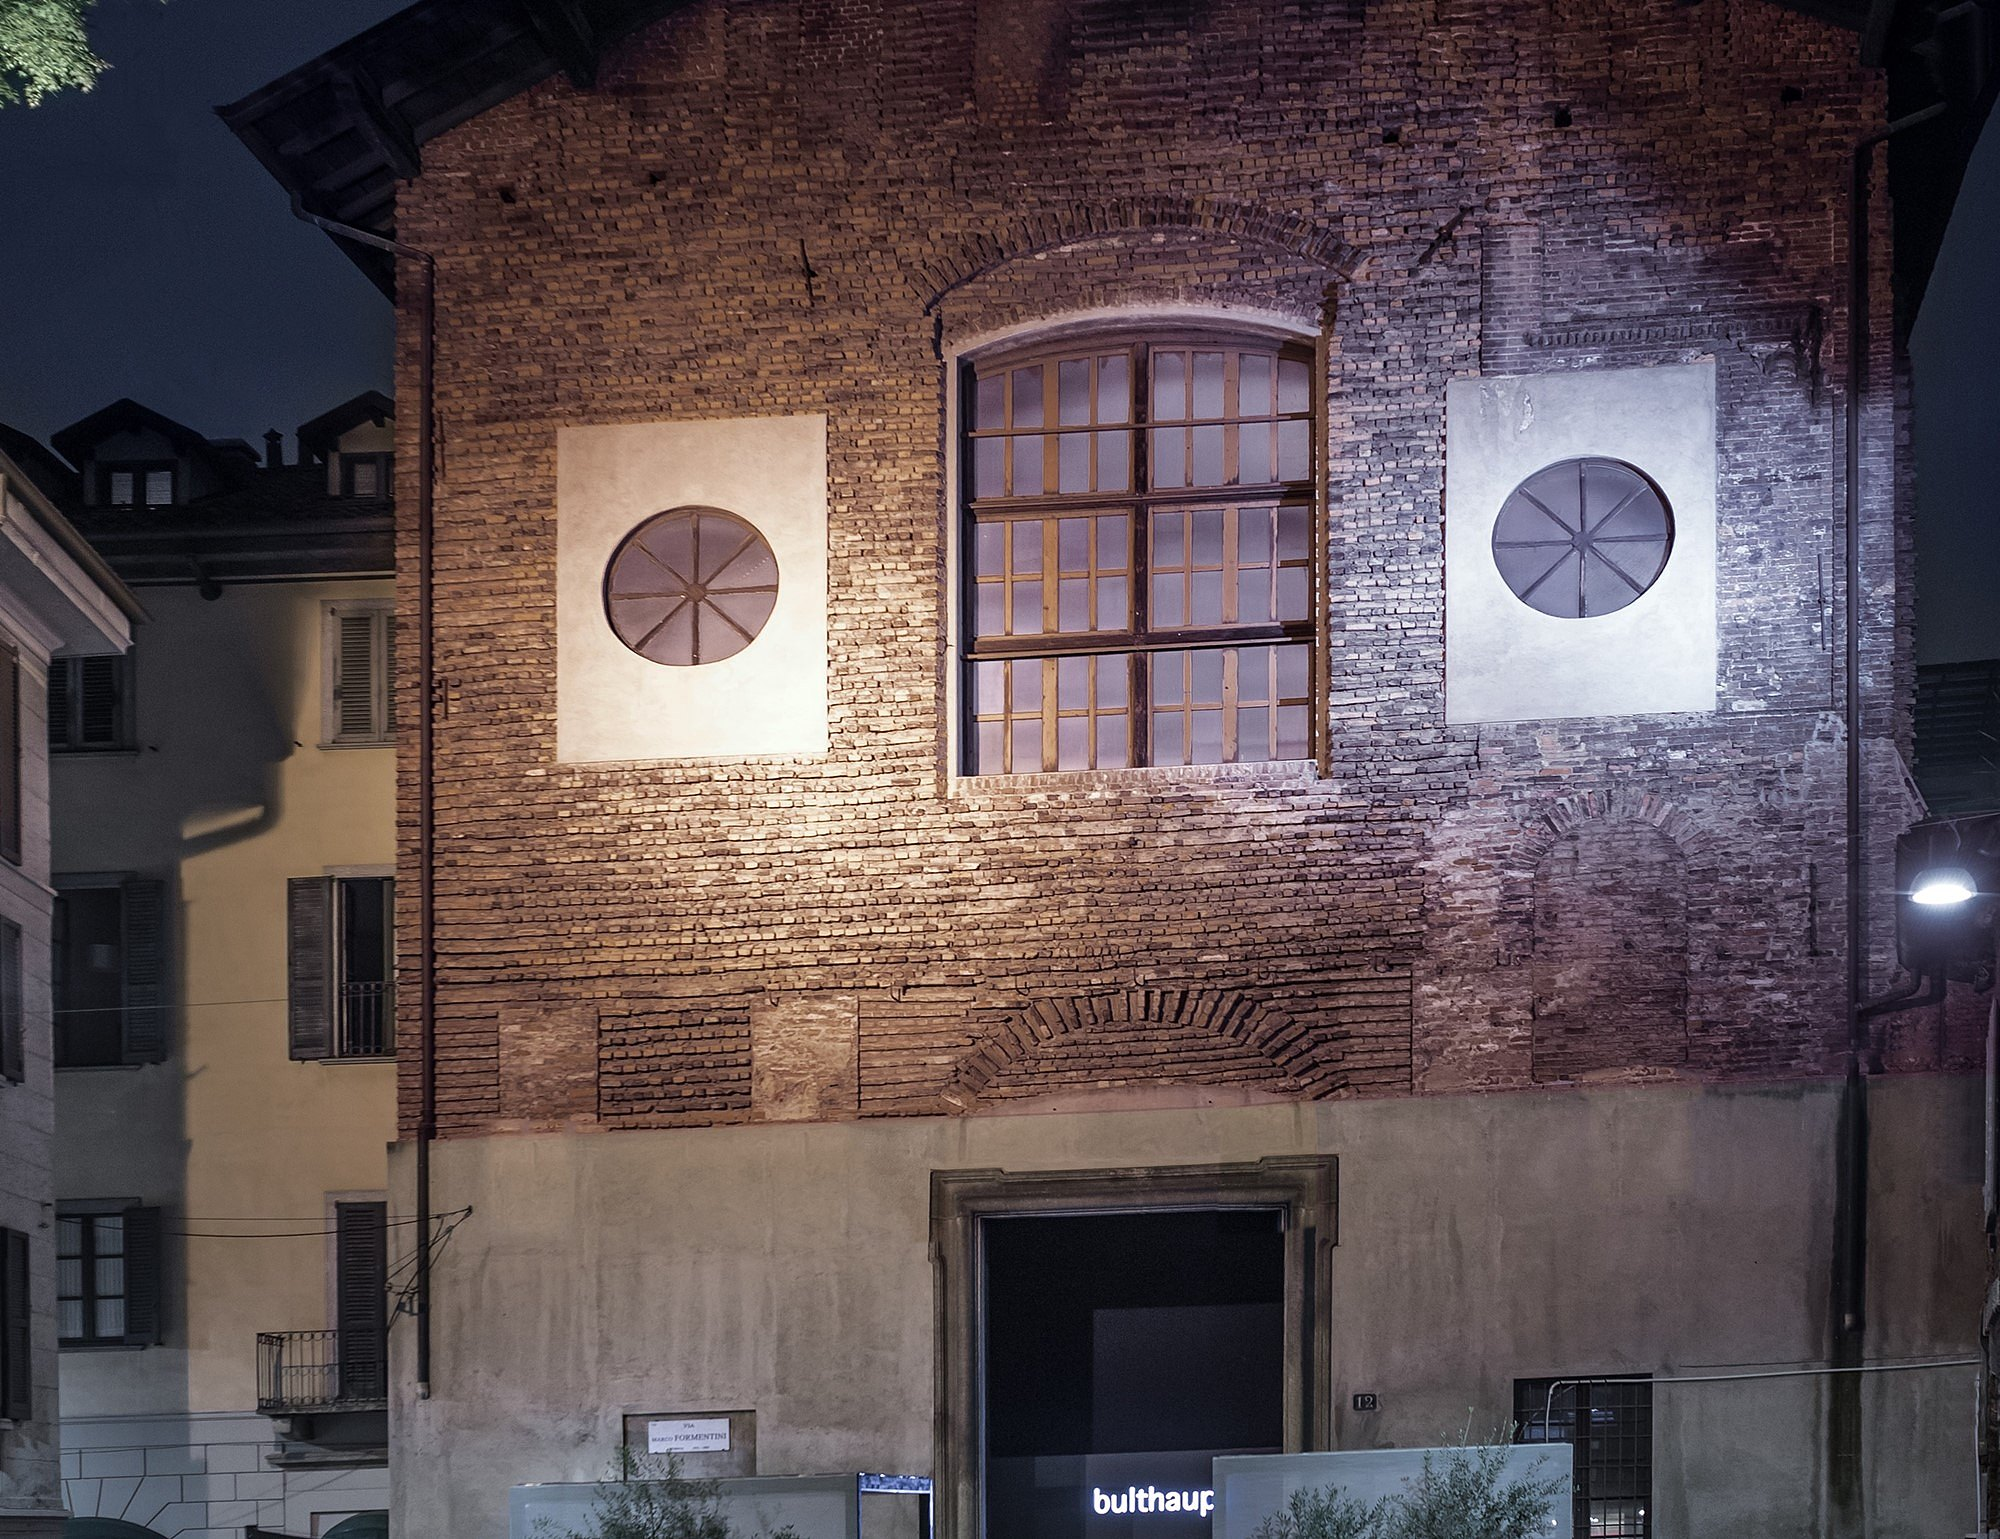 Exterior view of San Carpoforo in Brera which served as presentation venue for bulthaup during the Salone del Mobile 2018.